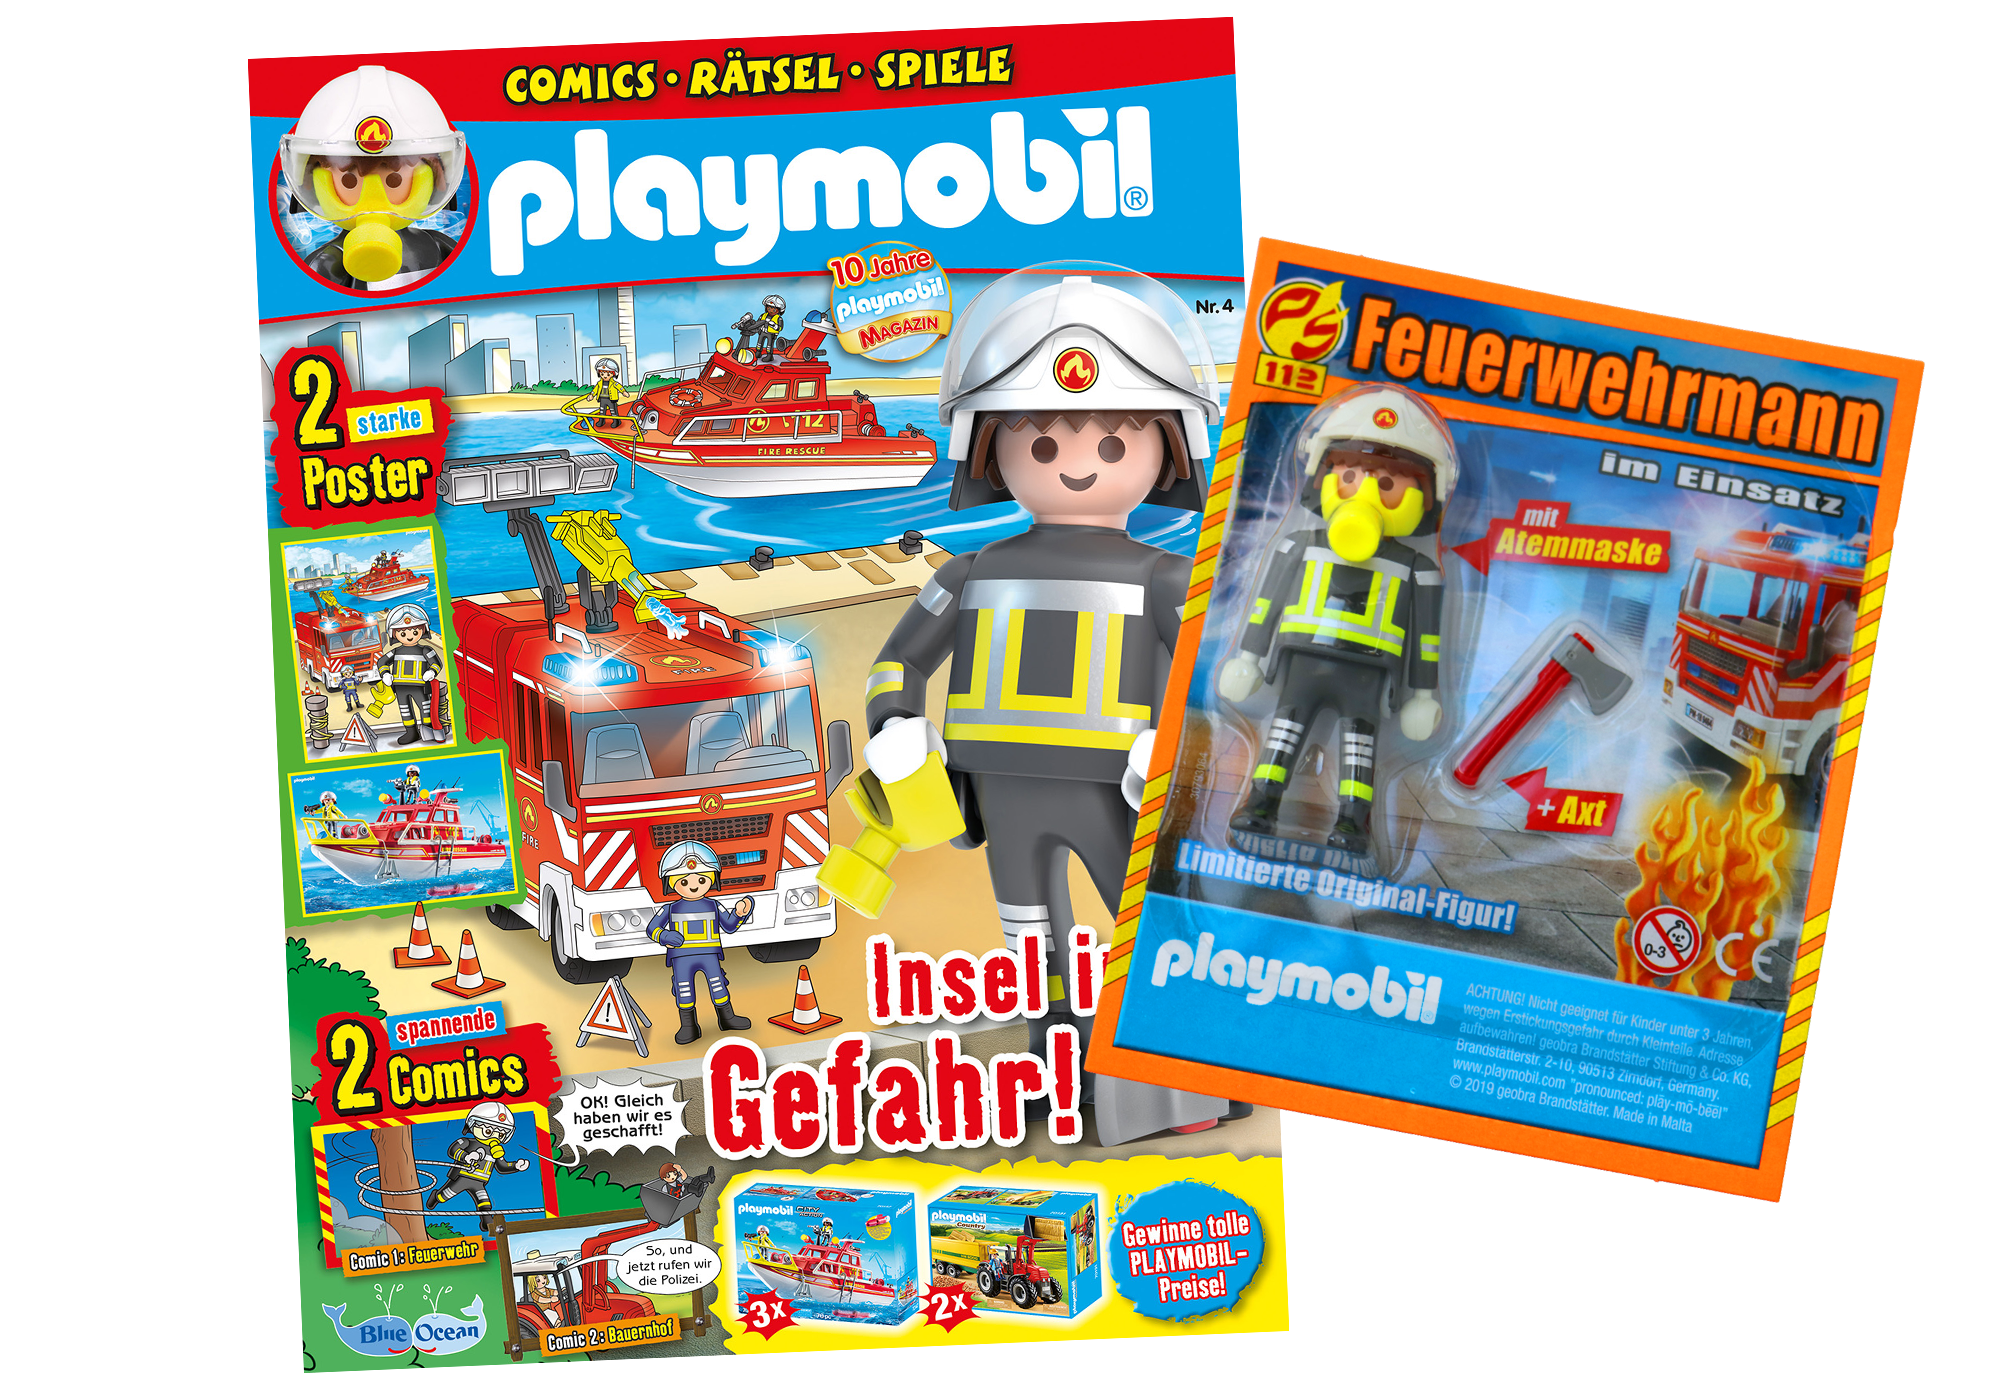 http://media.playmobil.com/i/playmobil/80626_product_detail/PLAYMOBIL-Magazin 4/2019 (Heft 70)